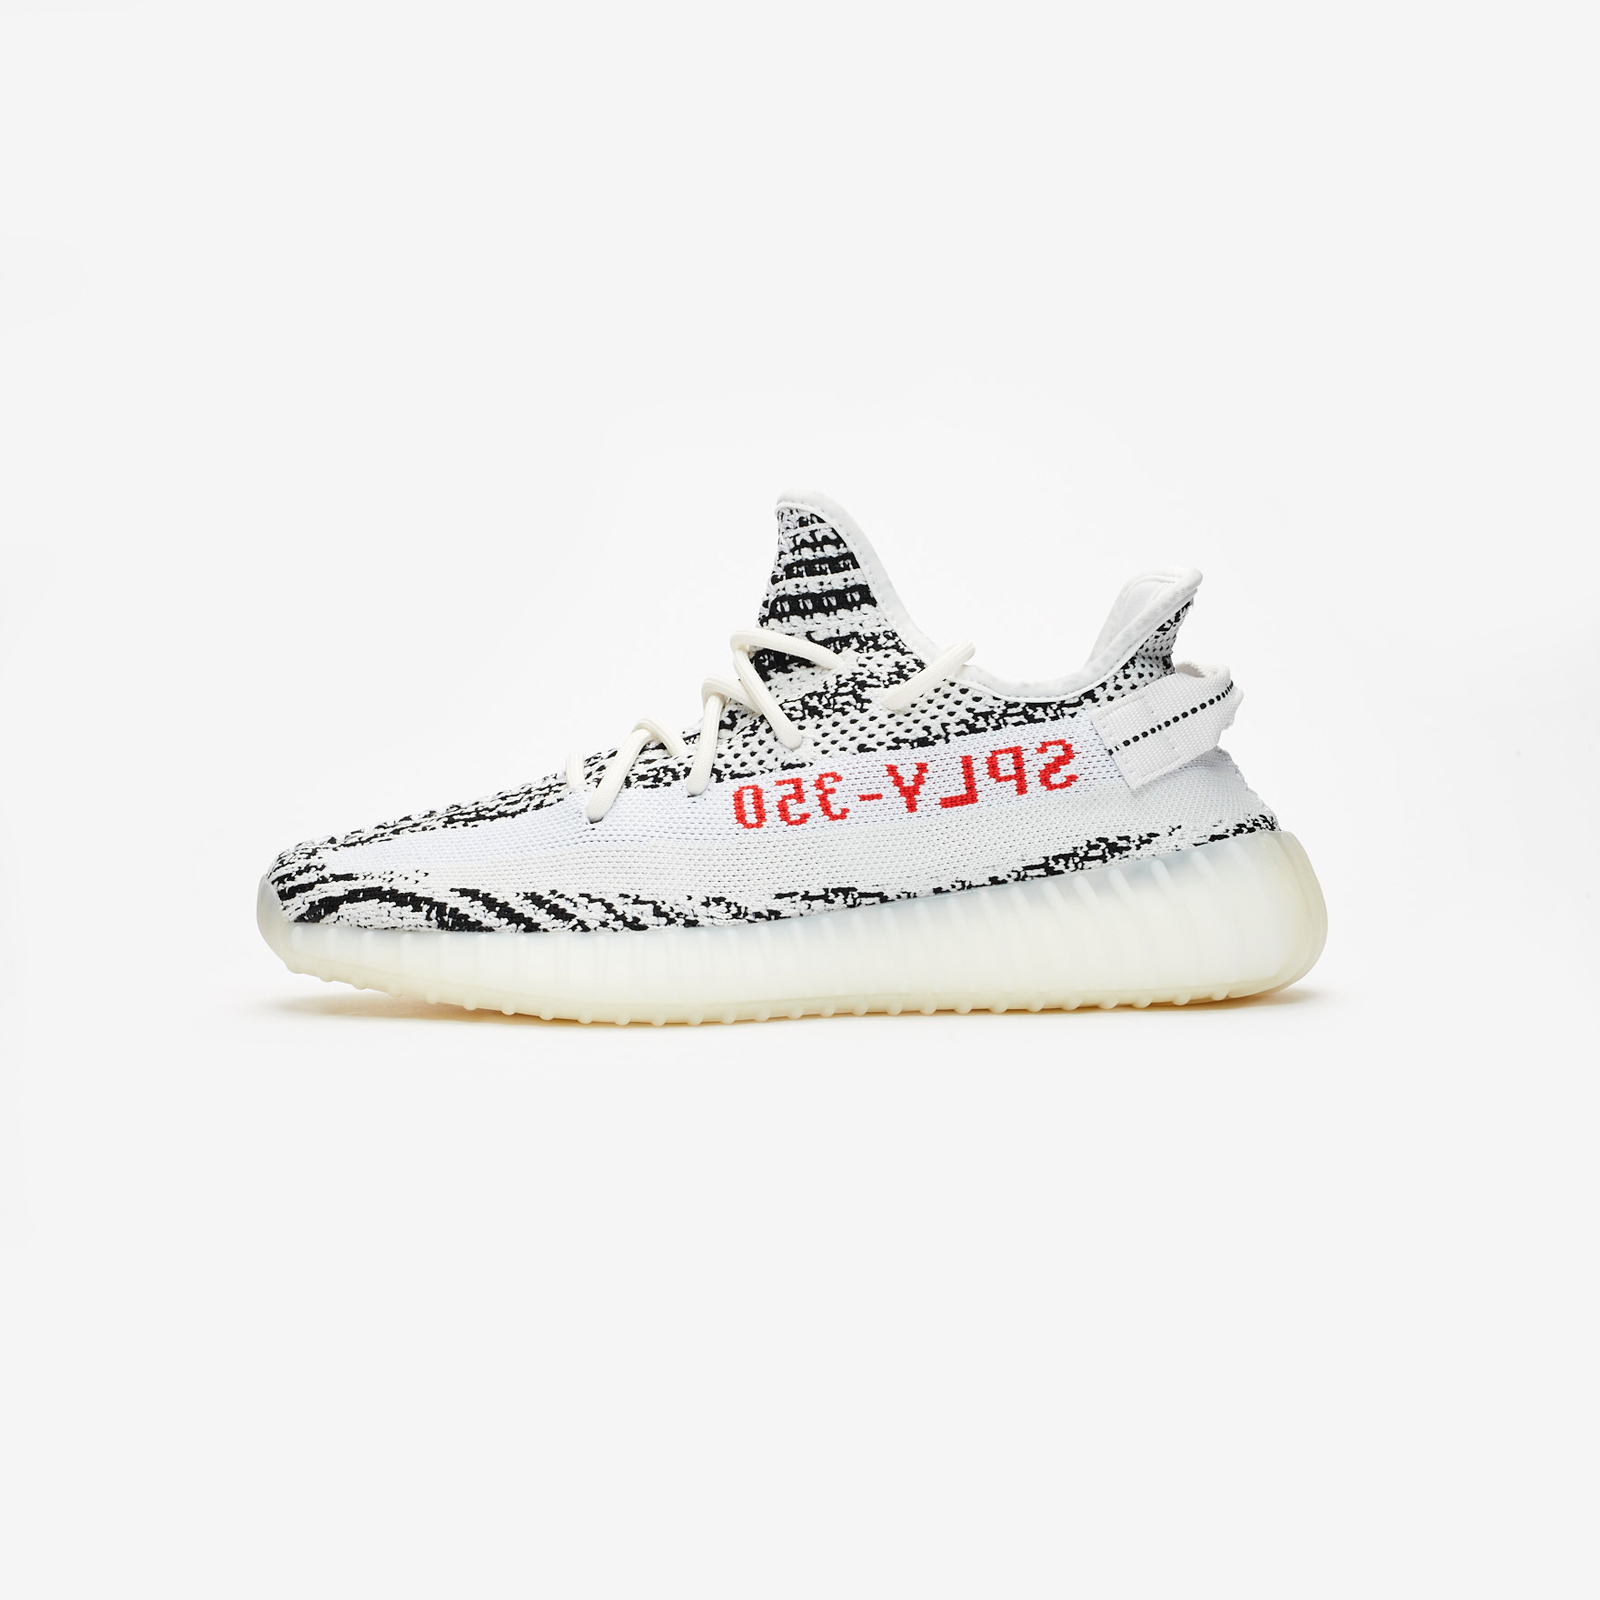 ed149d4f630 adidas Yeezy Boost 350 V2 - Cp9654 - Sneakersnstuff